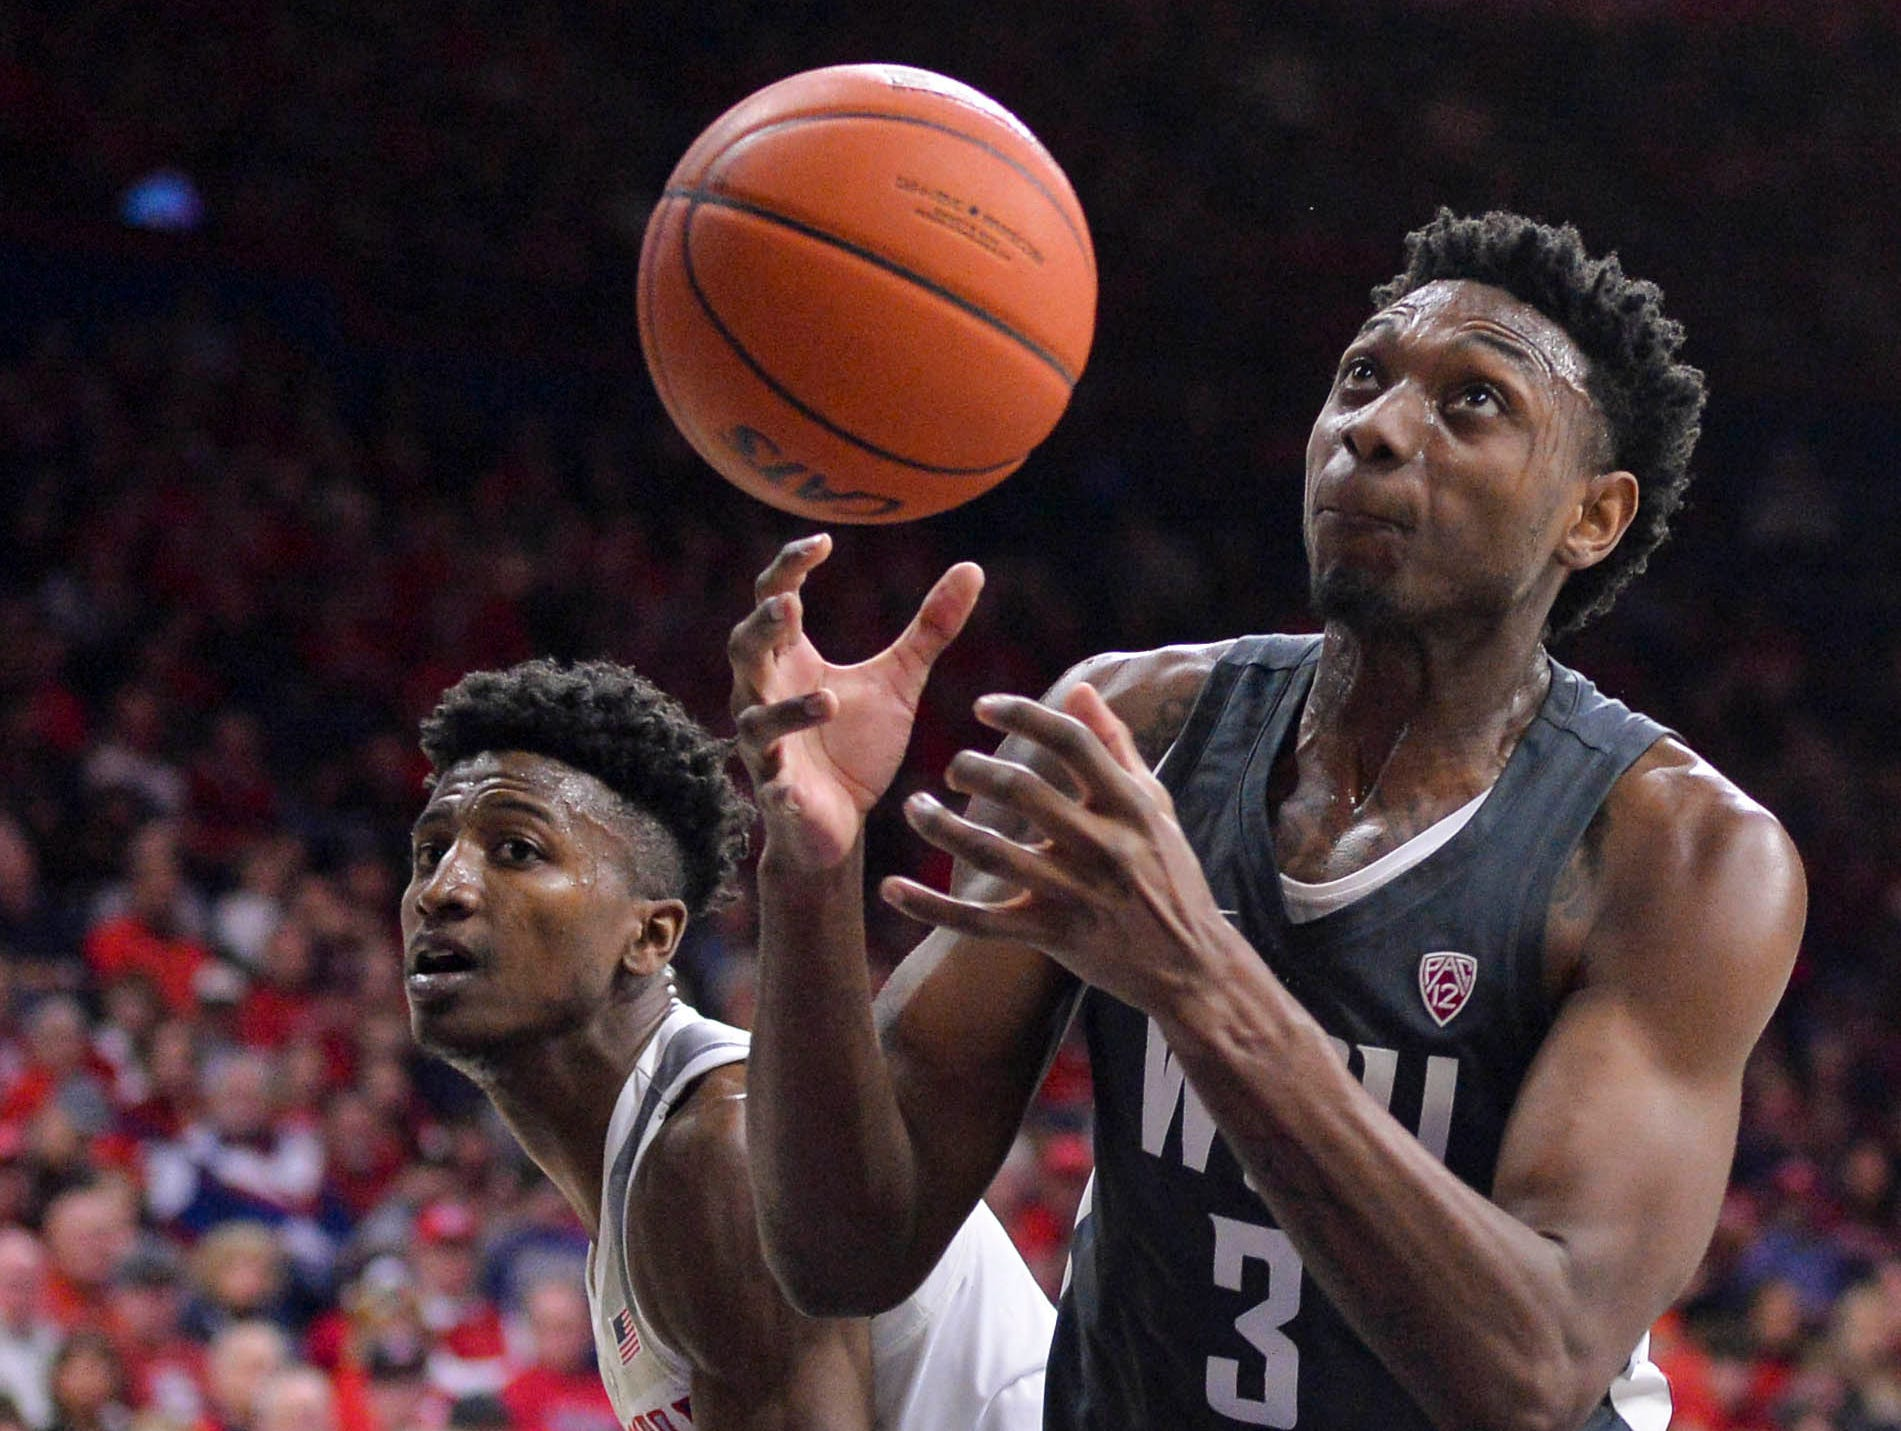 Feb 9, 2019; Tucson, AZ, USA; Washington State Cougars forward Robert Franks (3) loses control of the ball as Arizona Wildcats guard Dylan Smith (3) defends during the first half at McKale Center. Mandatory Credit: Casey Sapio-USA TODAY Sports